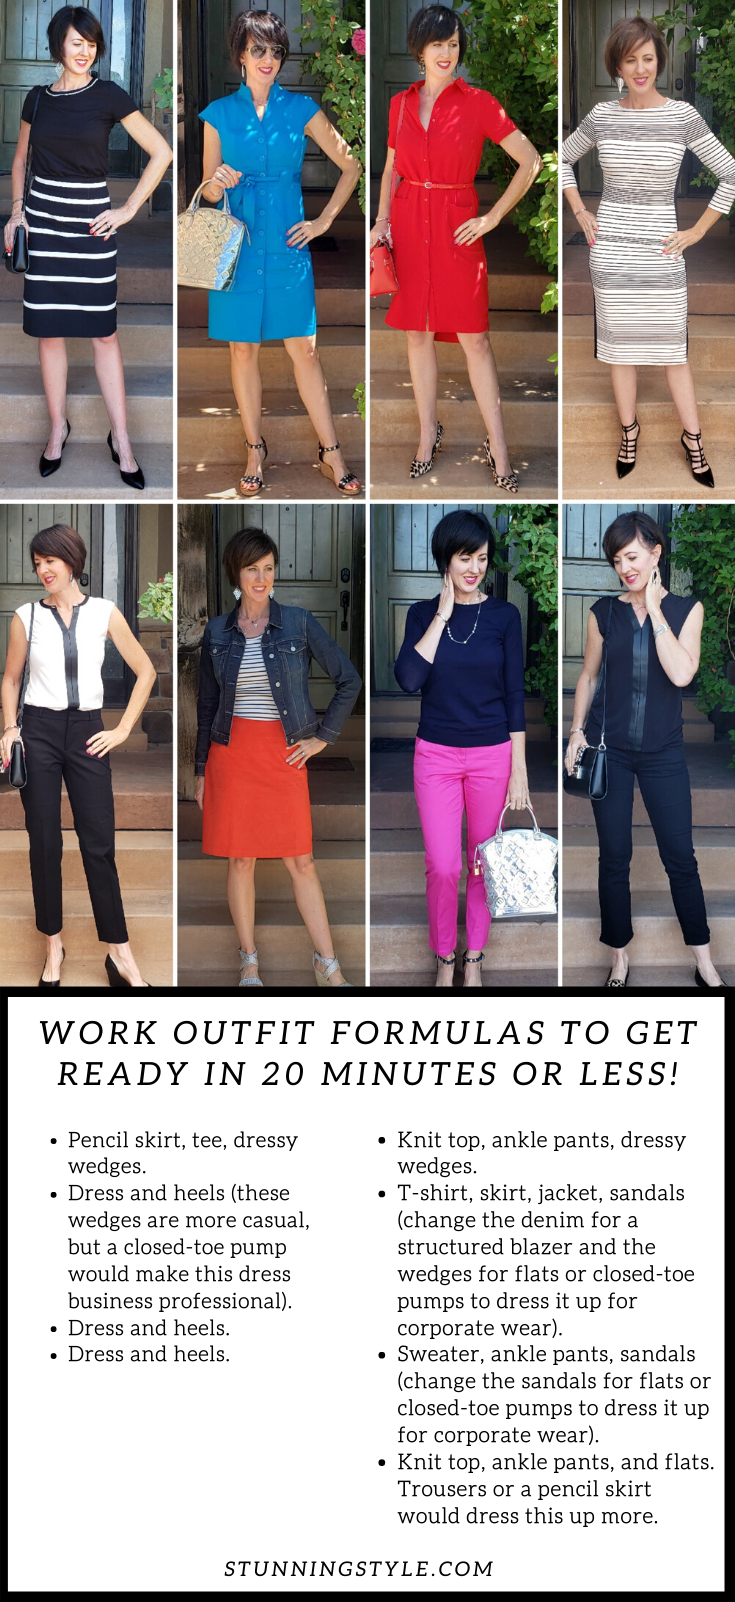 Work outfit formulas to get ready in  minutes or less